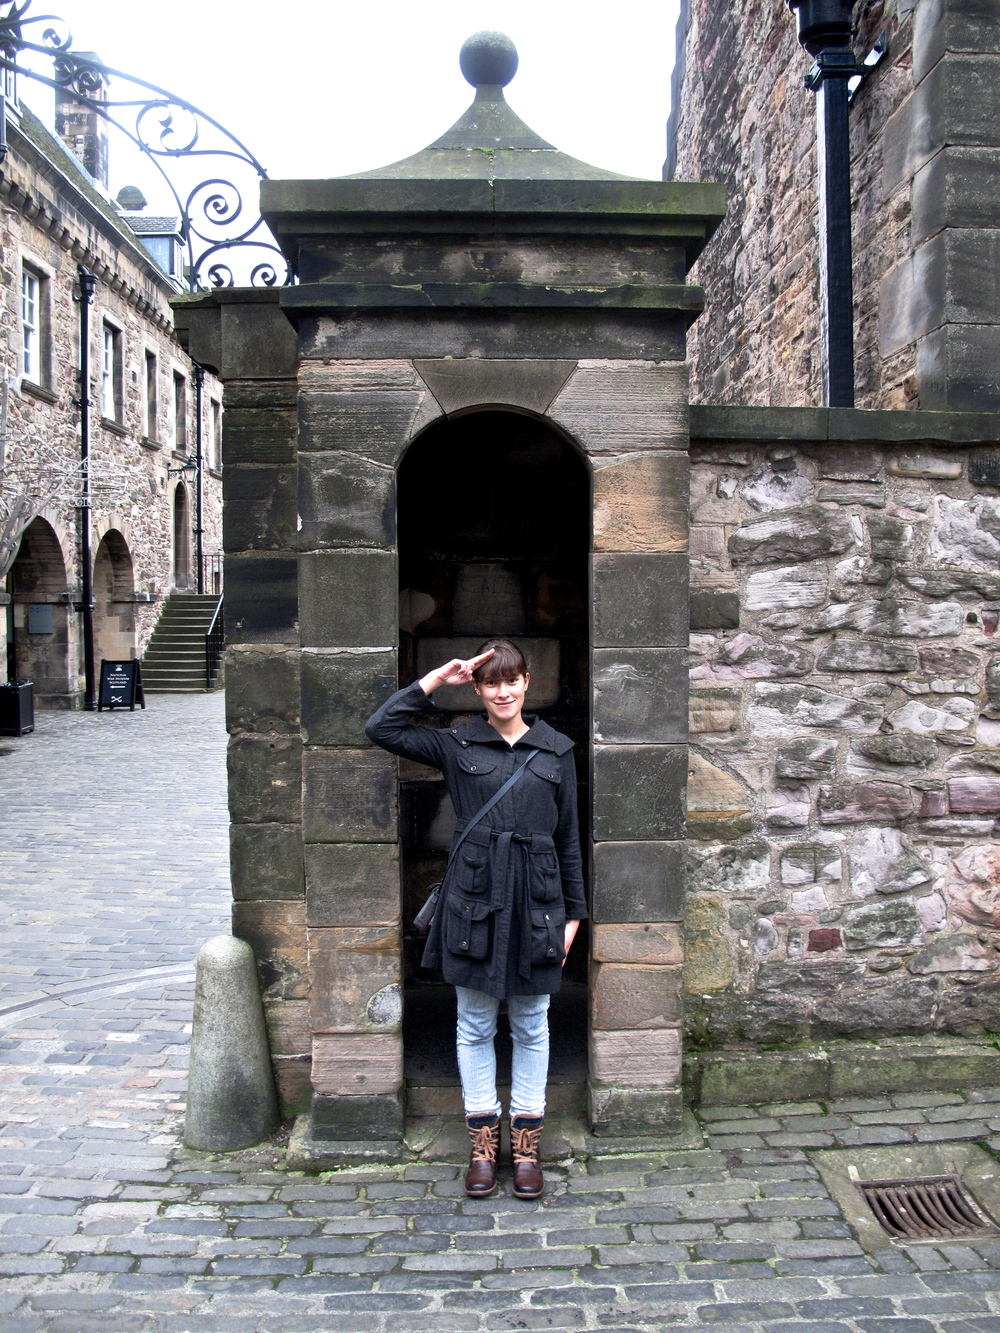 Saluting like a guard at Edinburgh Castle